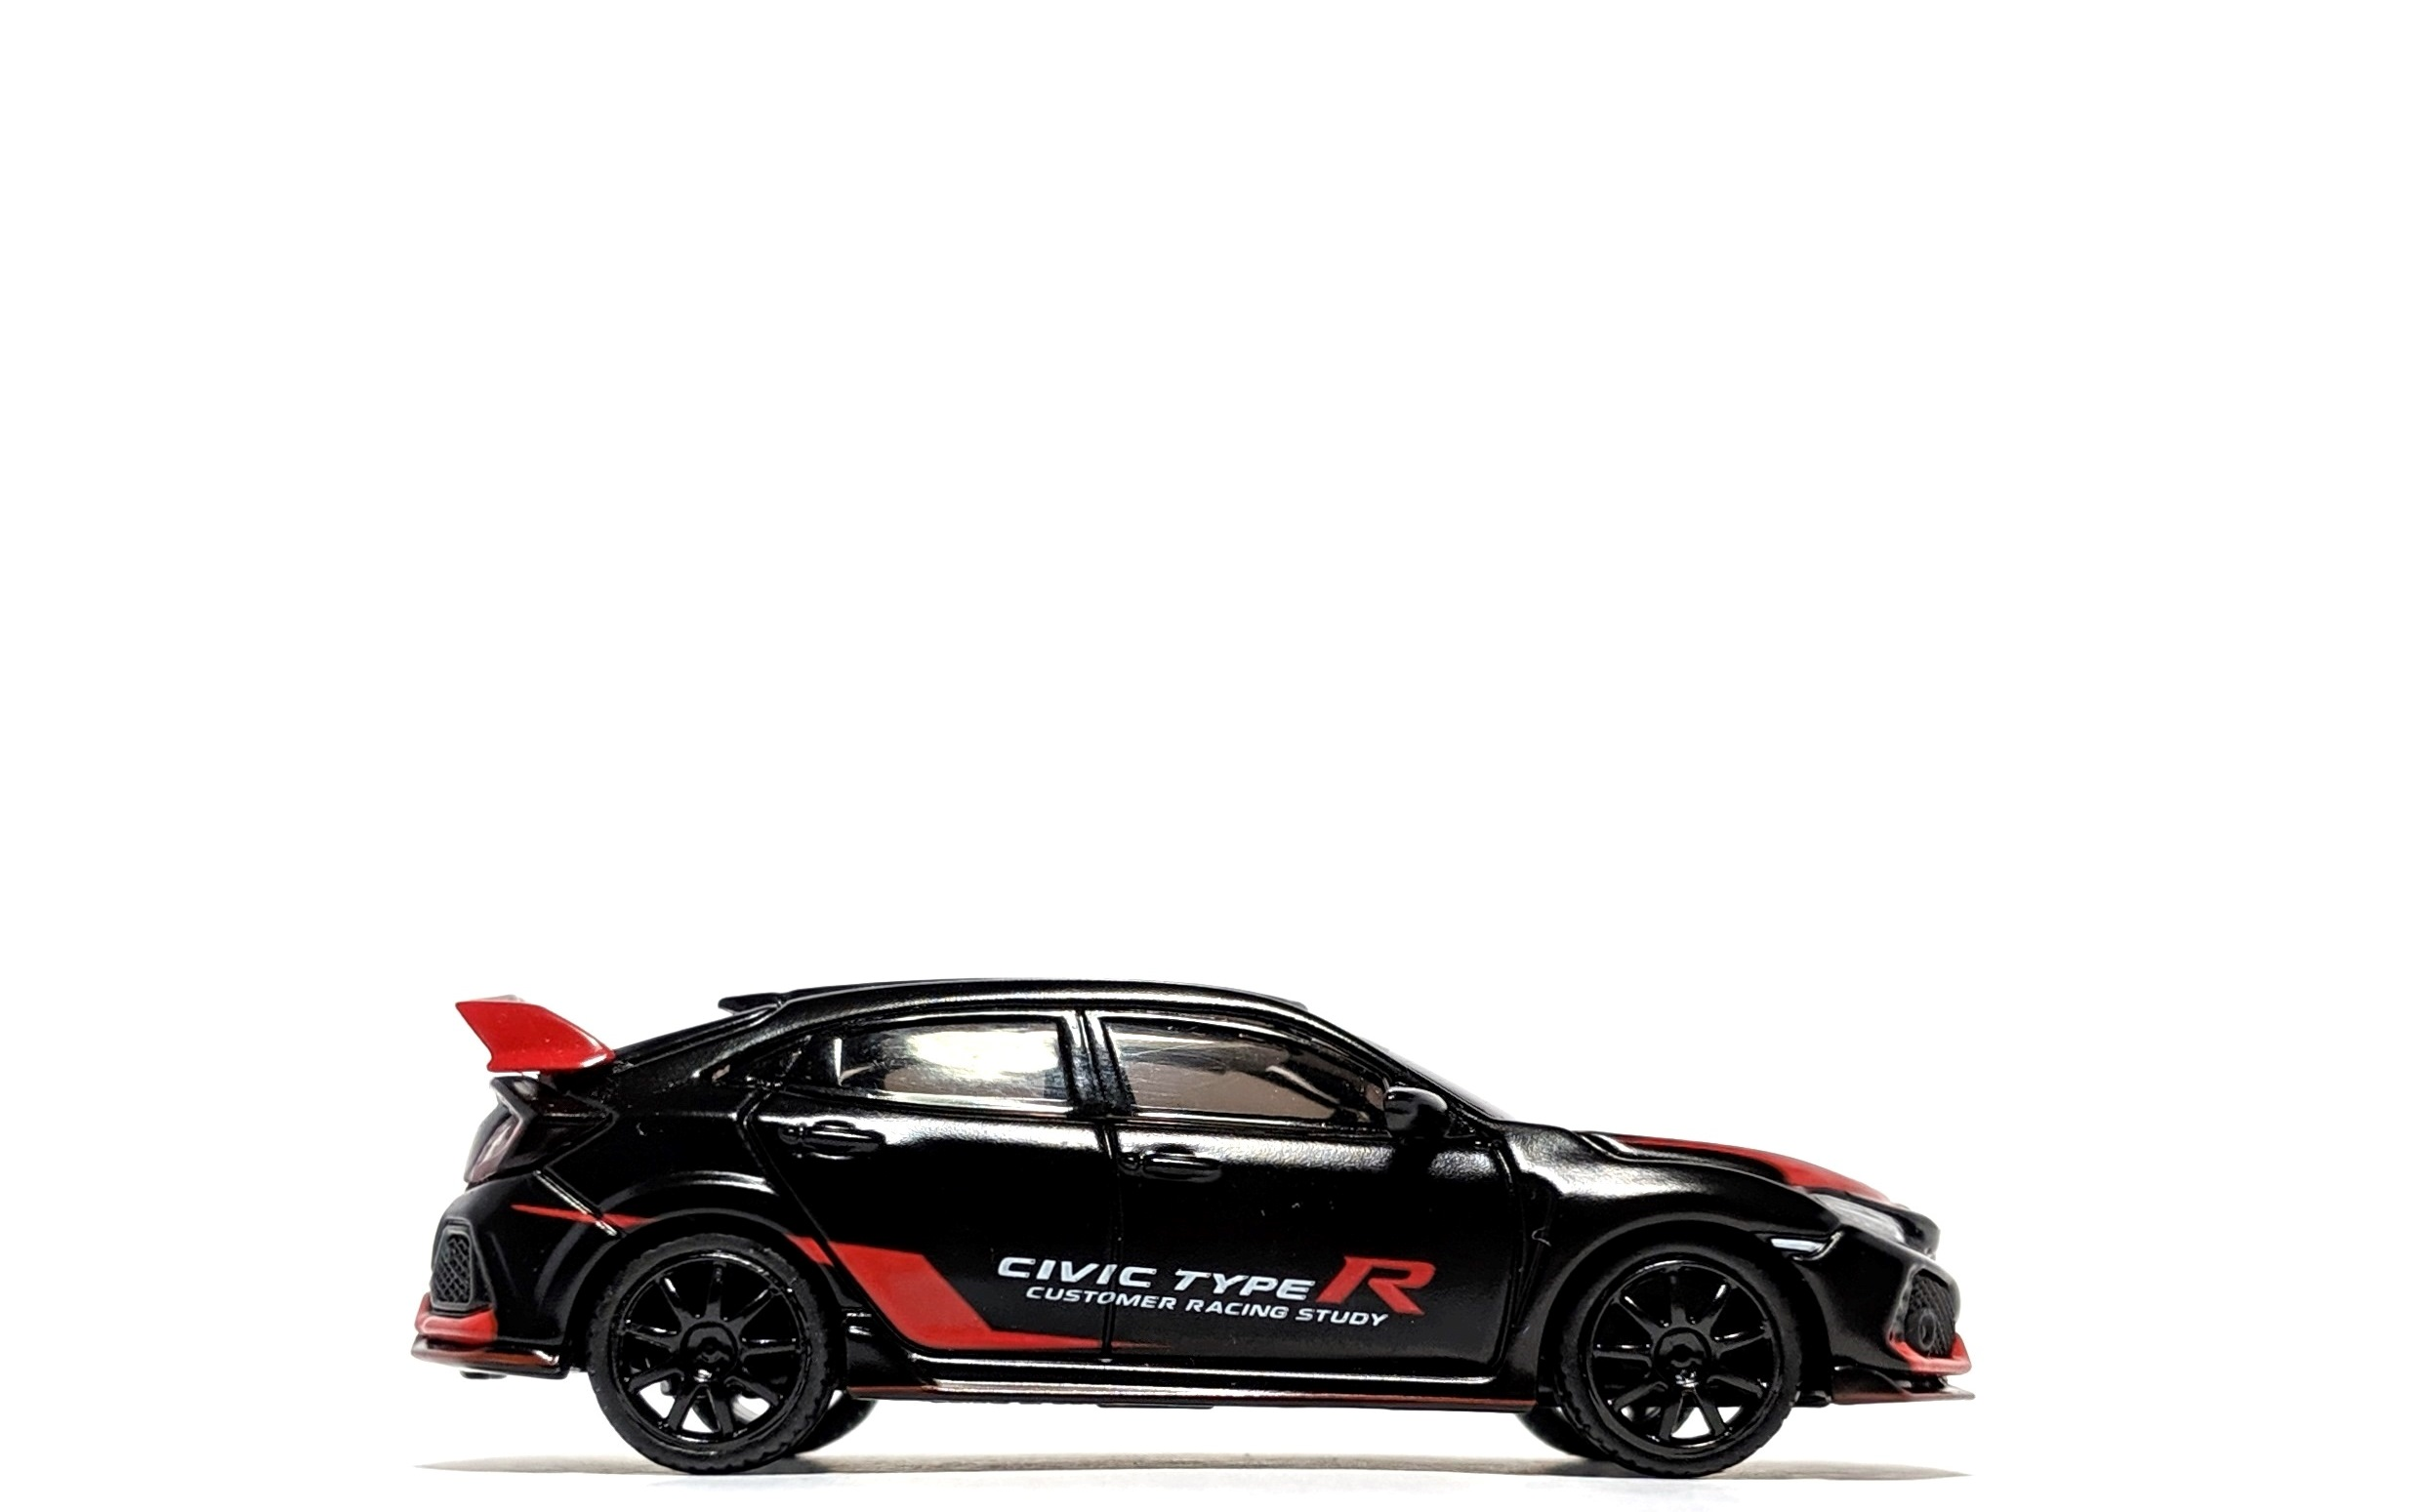 Honda Civic Type R (FK8) Customer Racing Study - TSM/Mini GT